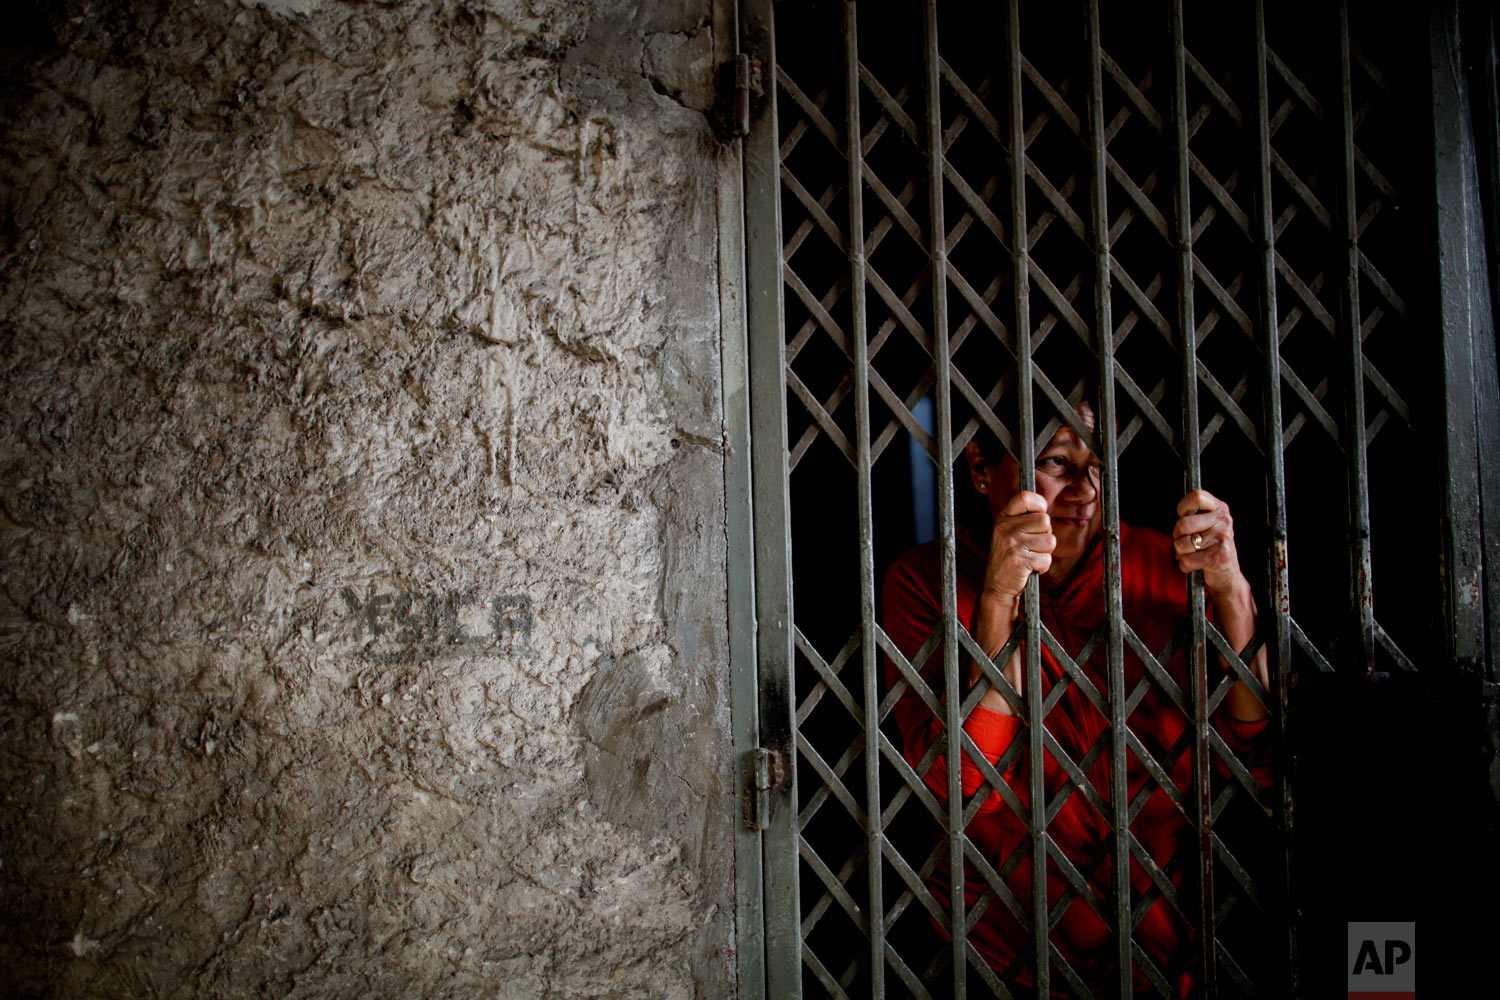 In this Sept. 6, 2018 photo, Modesta Cabanas stands behind her home's security gate on the outskirts of Buenos Aires, Argentina. Cabanas feeds her family at a soup kitchen, and says that since Argentina's economic crisis started, the portions are much smaller because more people are eating there. (AP Photo/Natacha Pisarenko)